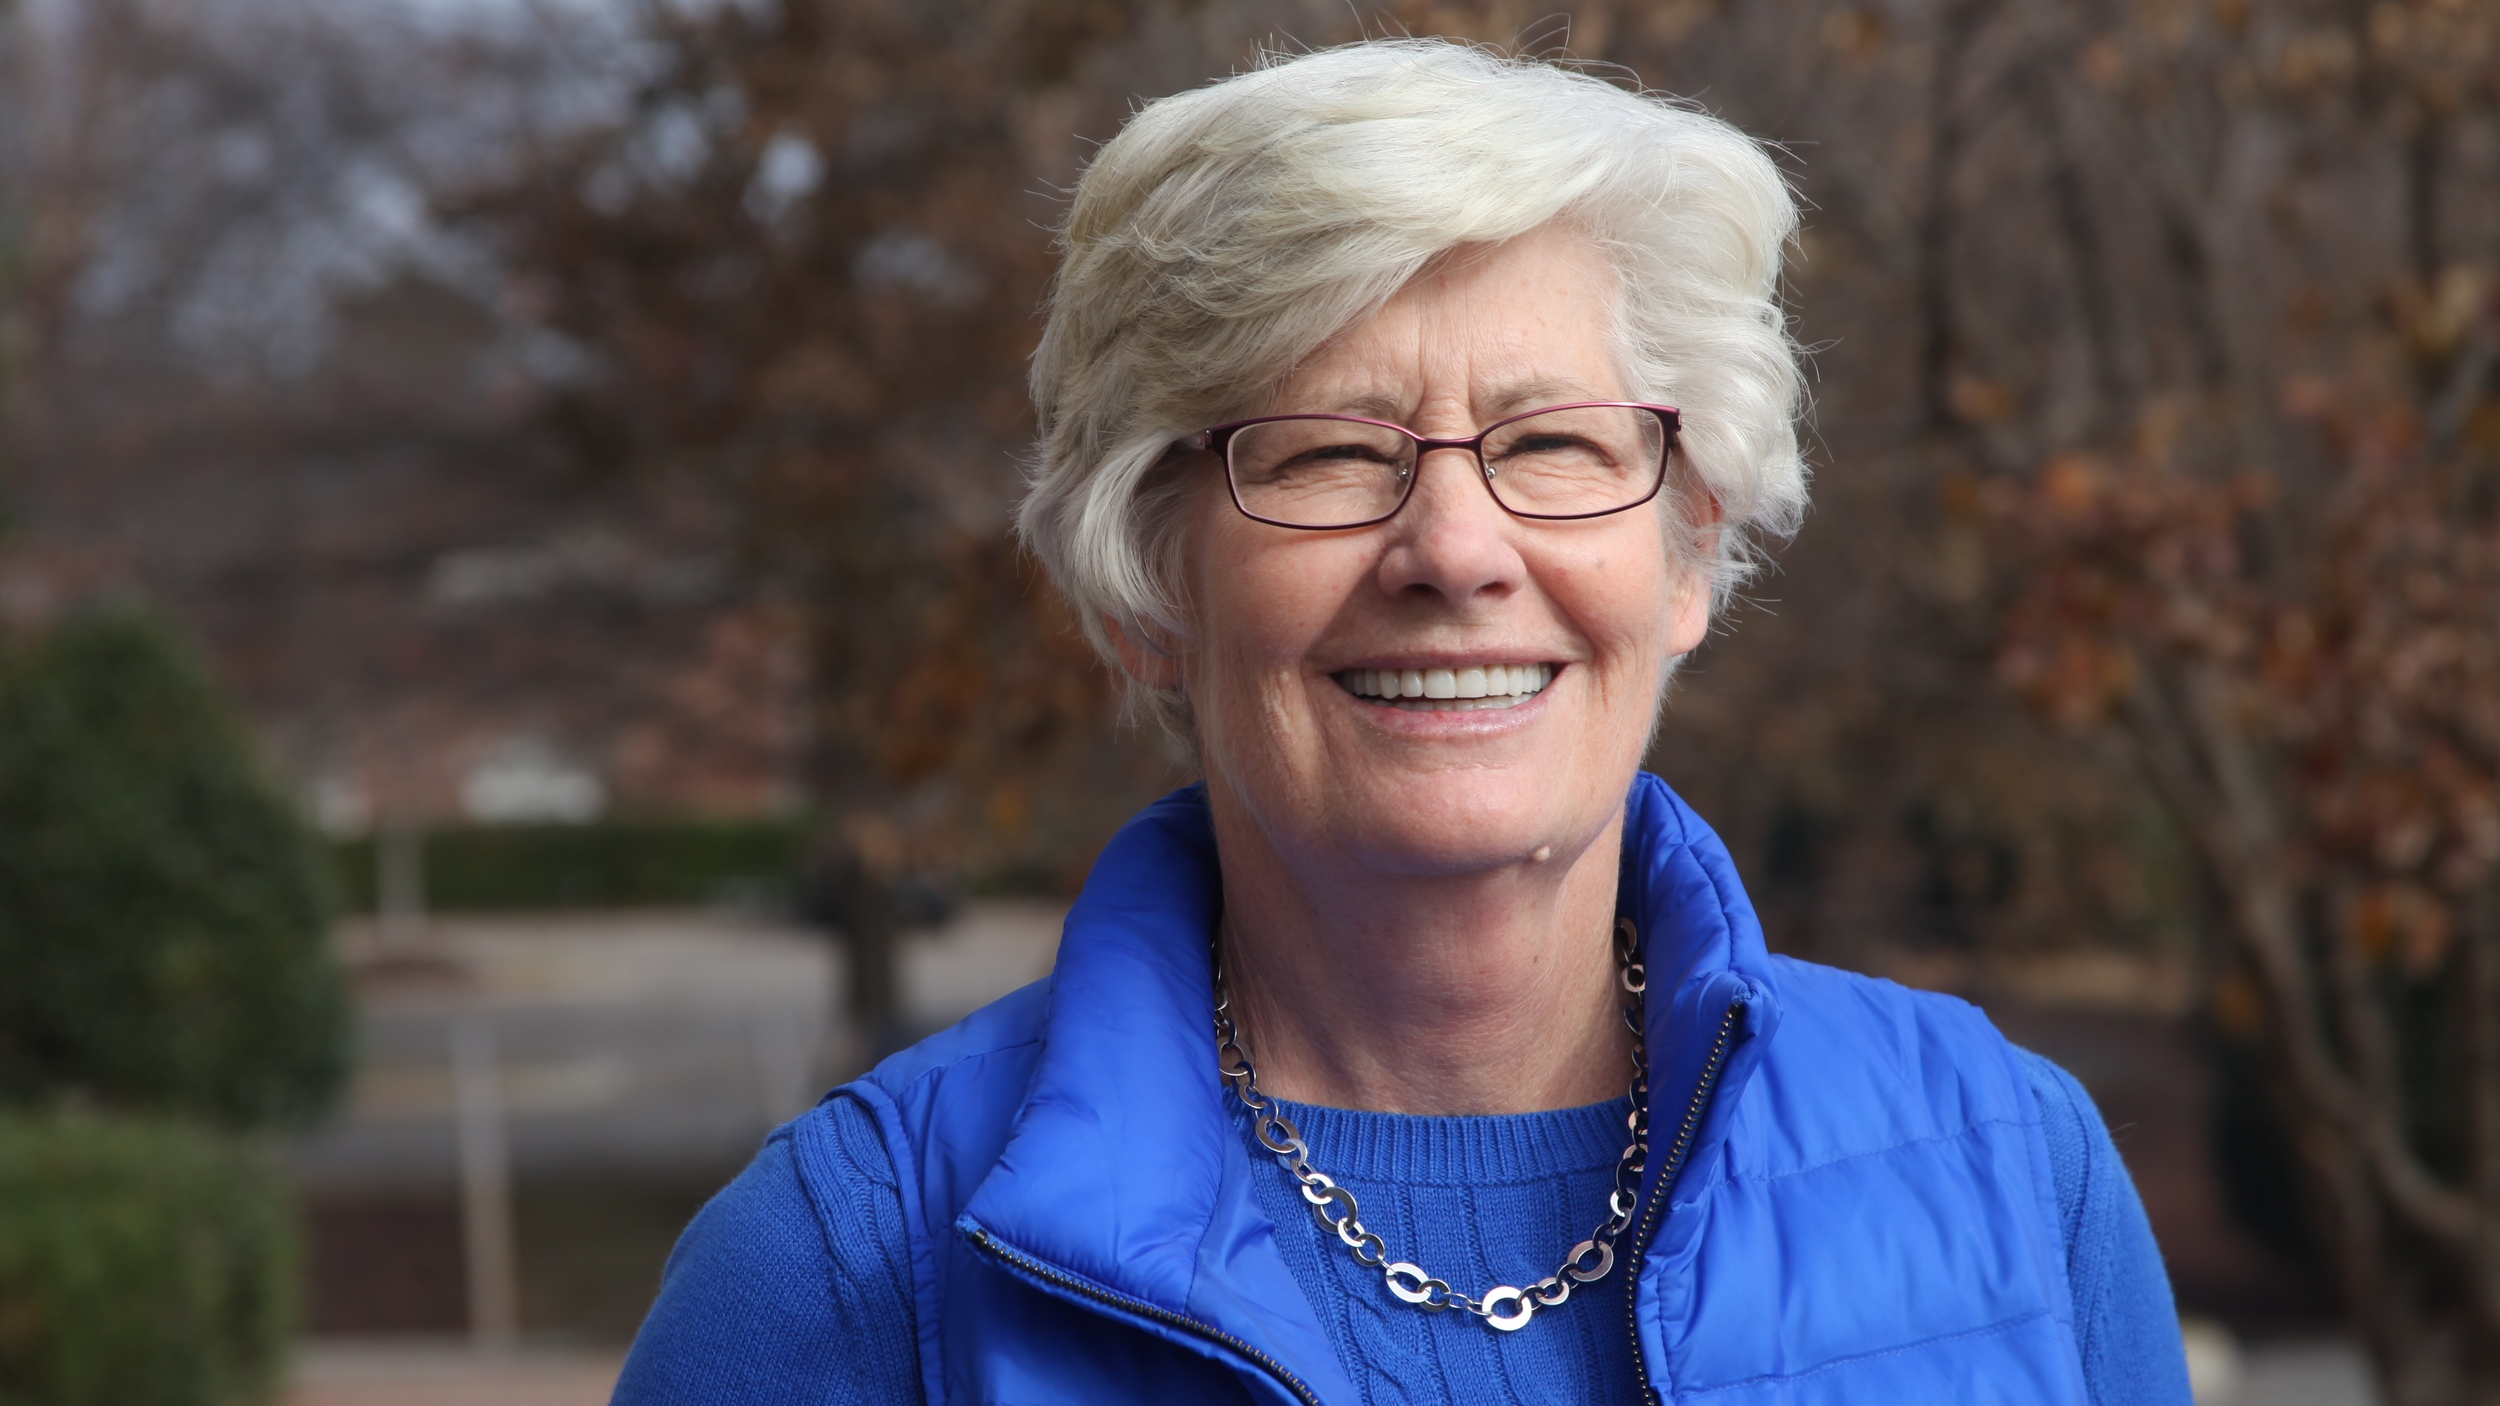 Nan Clarke: Being New to Community